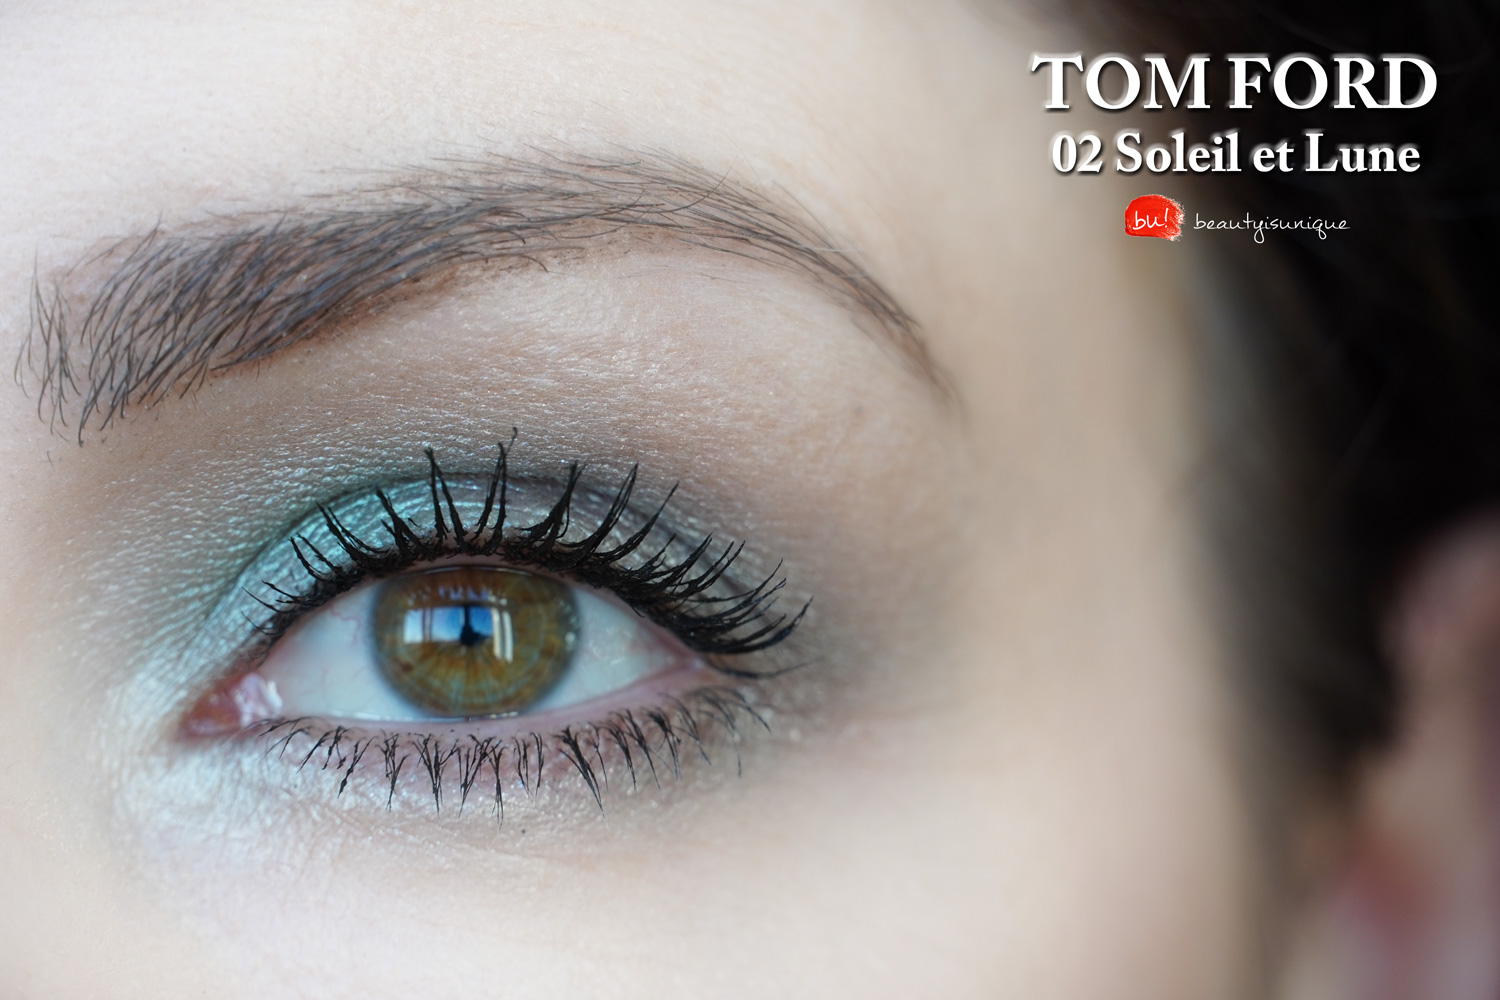 6Tom-ford-soleil-et-lune-swatches